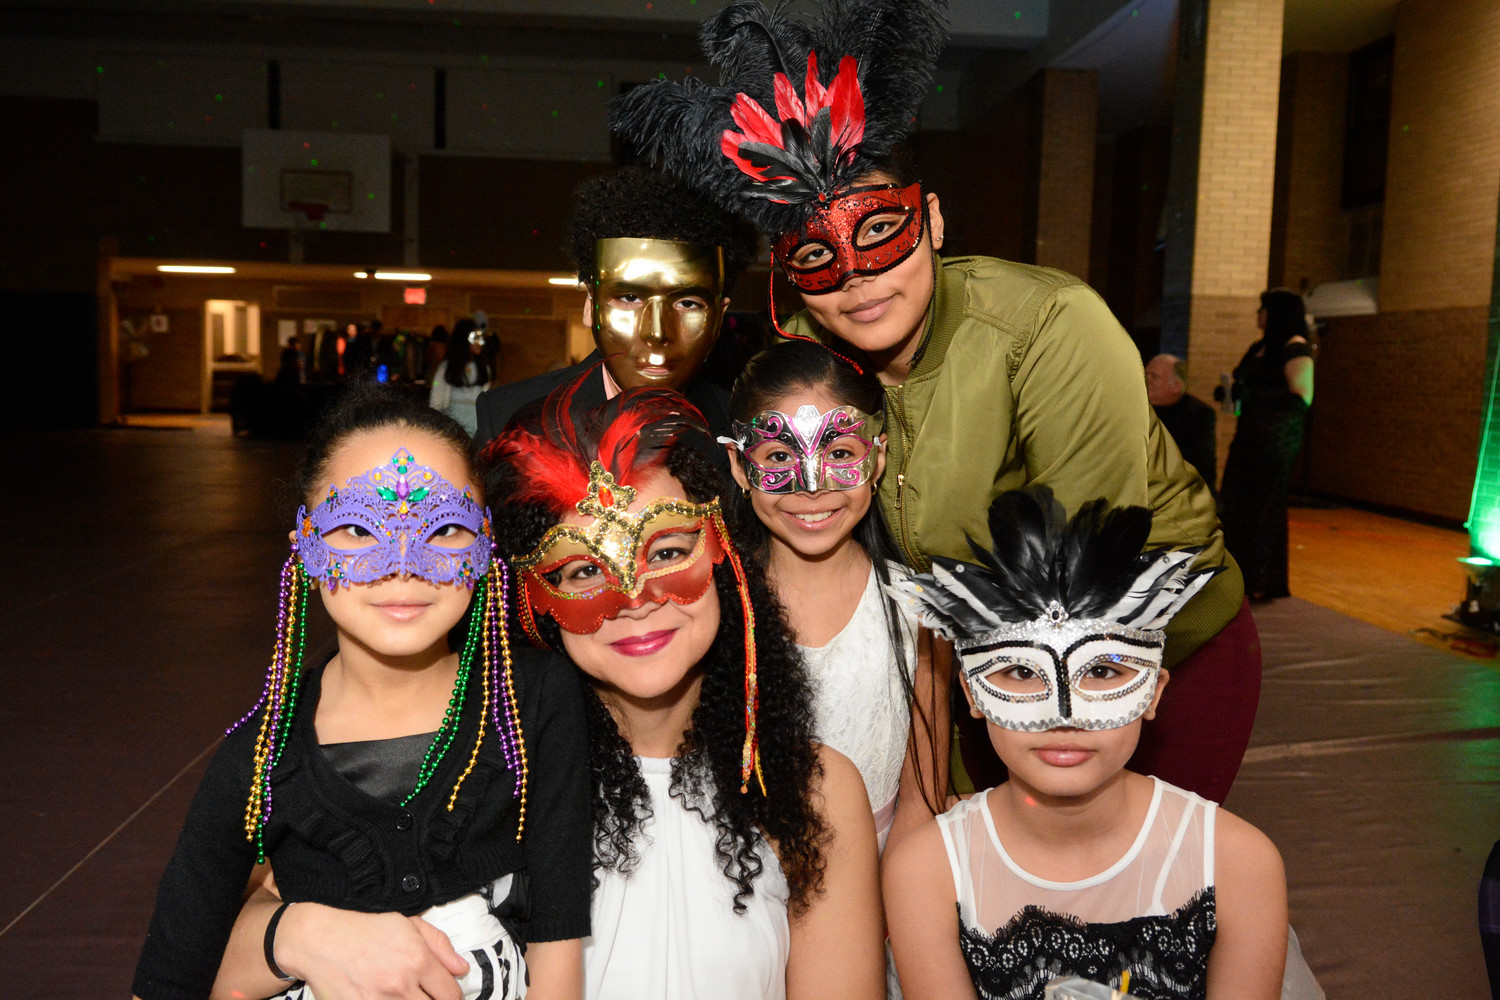 Yoely Peralta poses with daughters Alanna, age 6, in purple mask, and Alyssa, 10, in black and white mask, and behind her, son Andrew, 12, in gold mask and daughter Ariana, 15, in red mask and olive shirt. Between Ms. Peralta and Ariana is family friend Alina Morales, 9, in silver and pink mask.